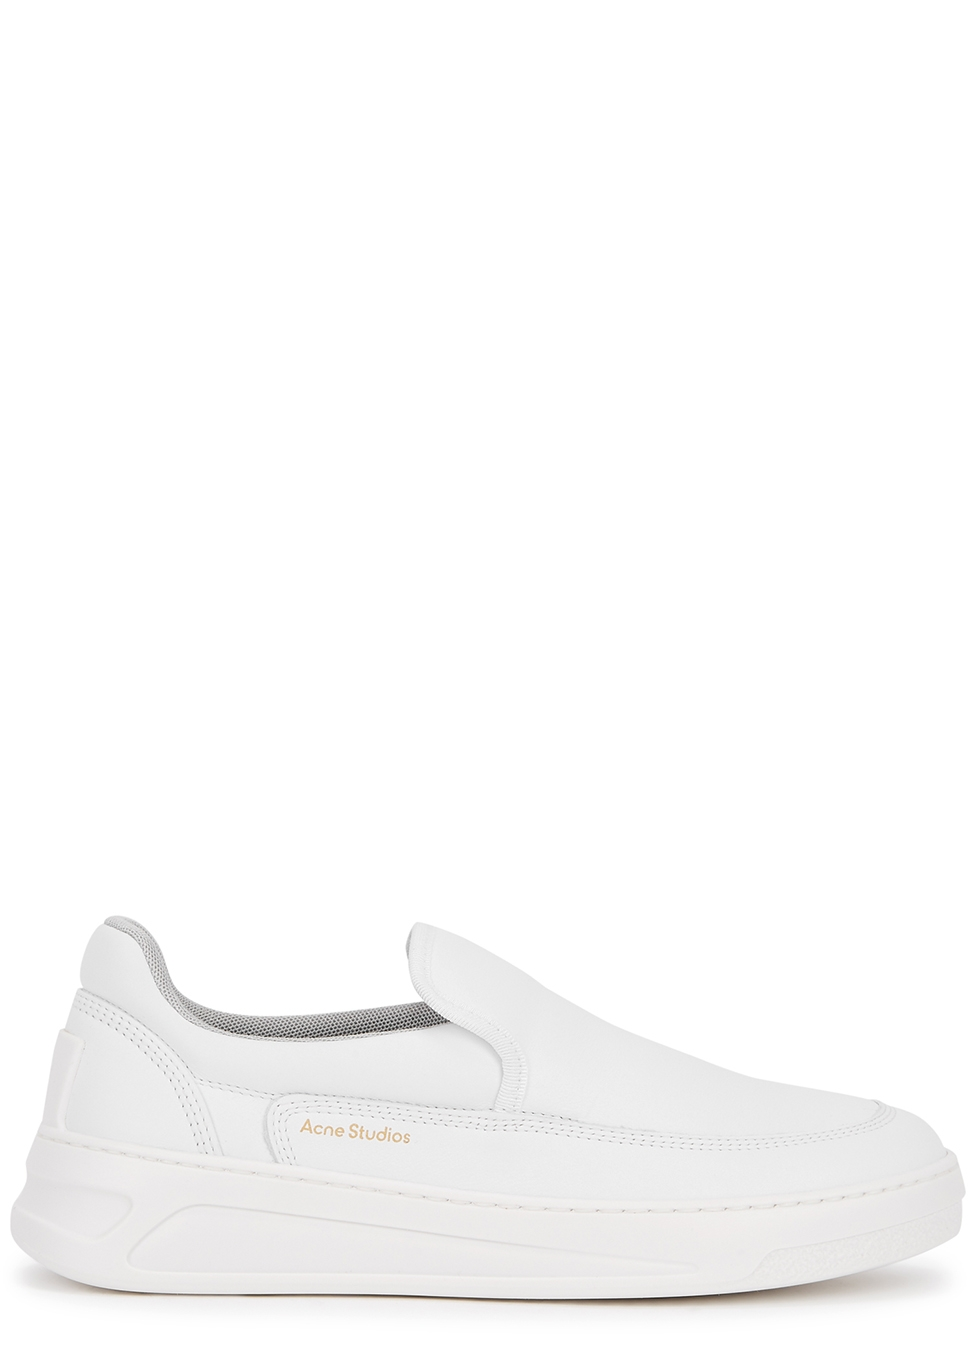 Acne Studios Leathers BENNIE WHITE LEATHER SLIP-ON SNEAKERS